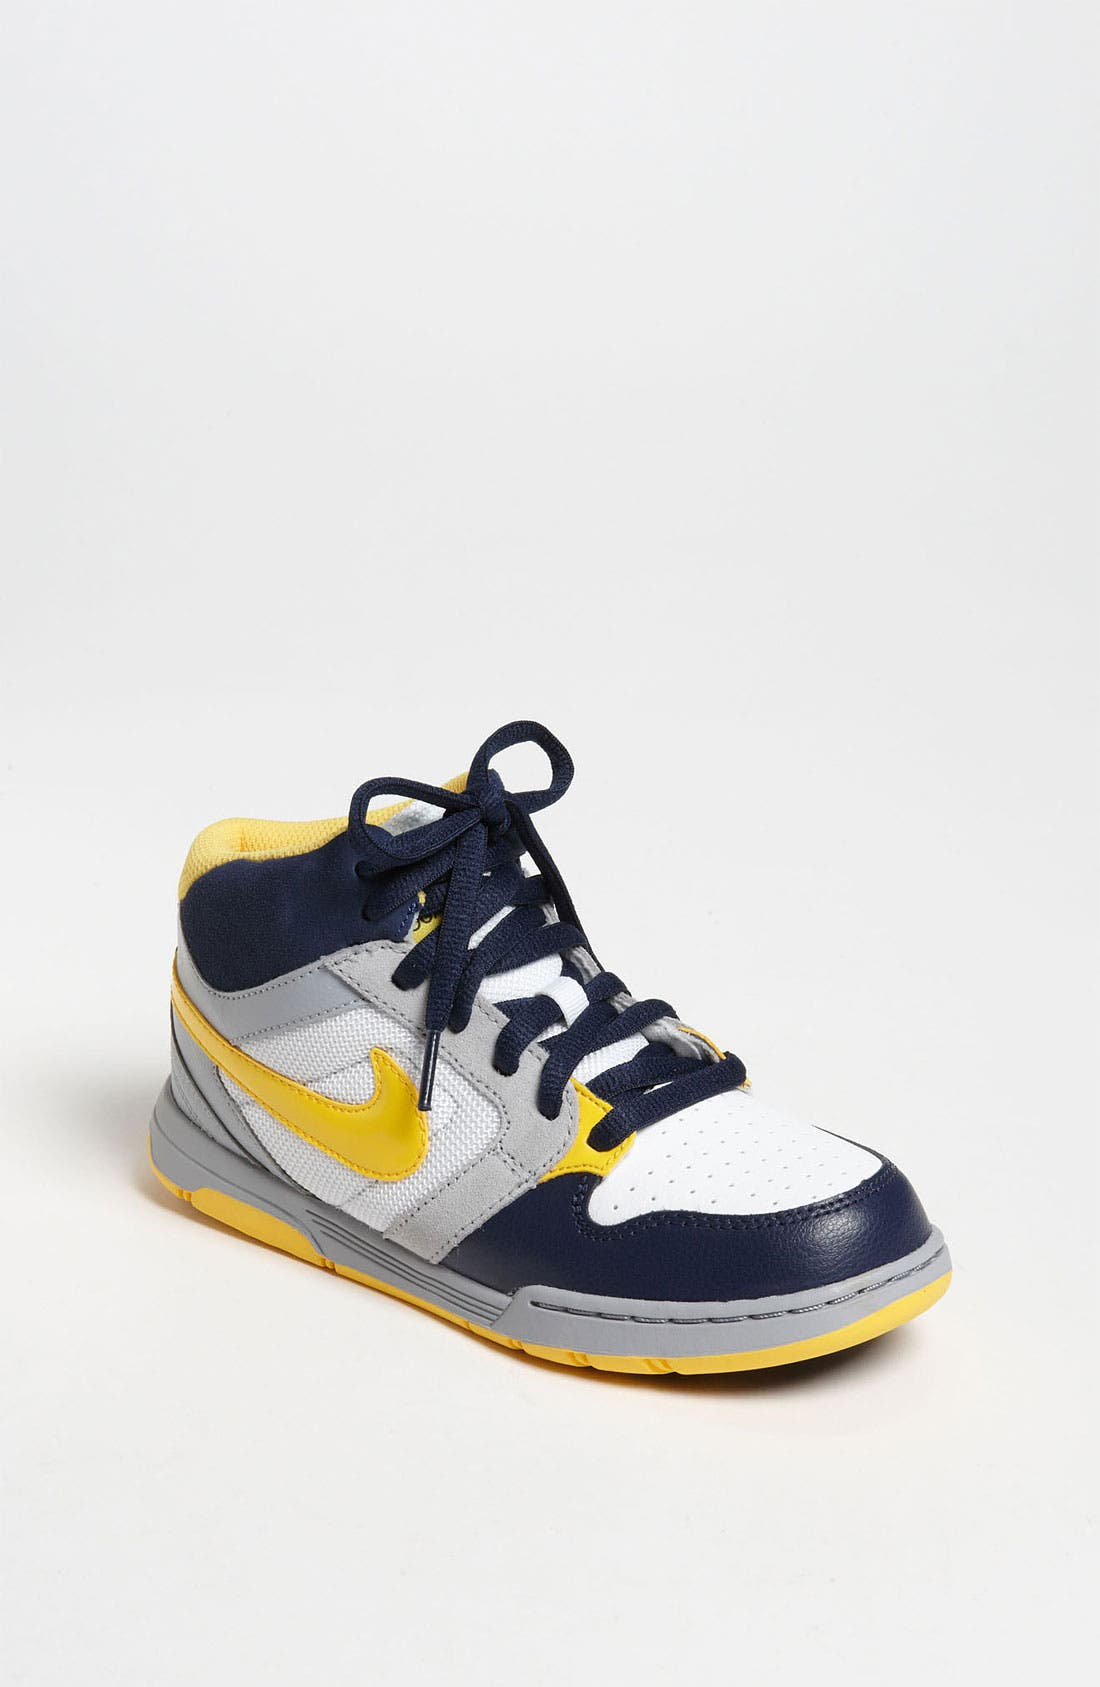 Main Image - Nike 'Mogan Mid 3' Sneaker (Toddler, Little Kid & Big Kid)